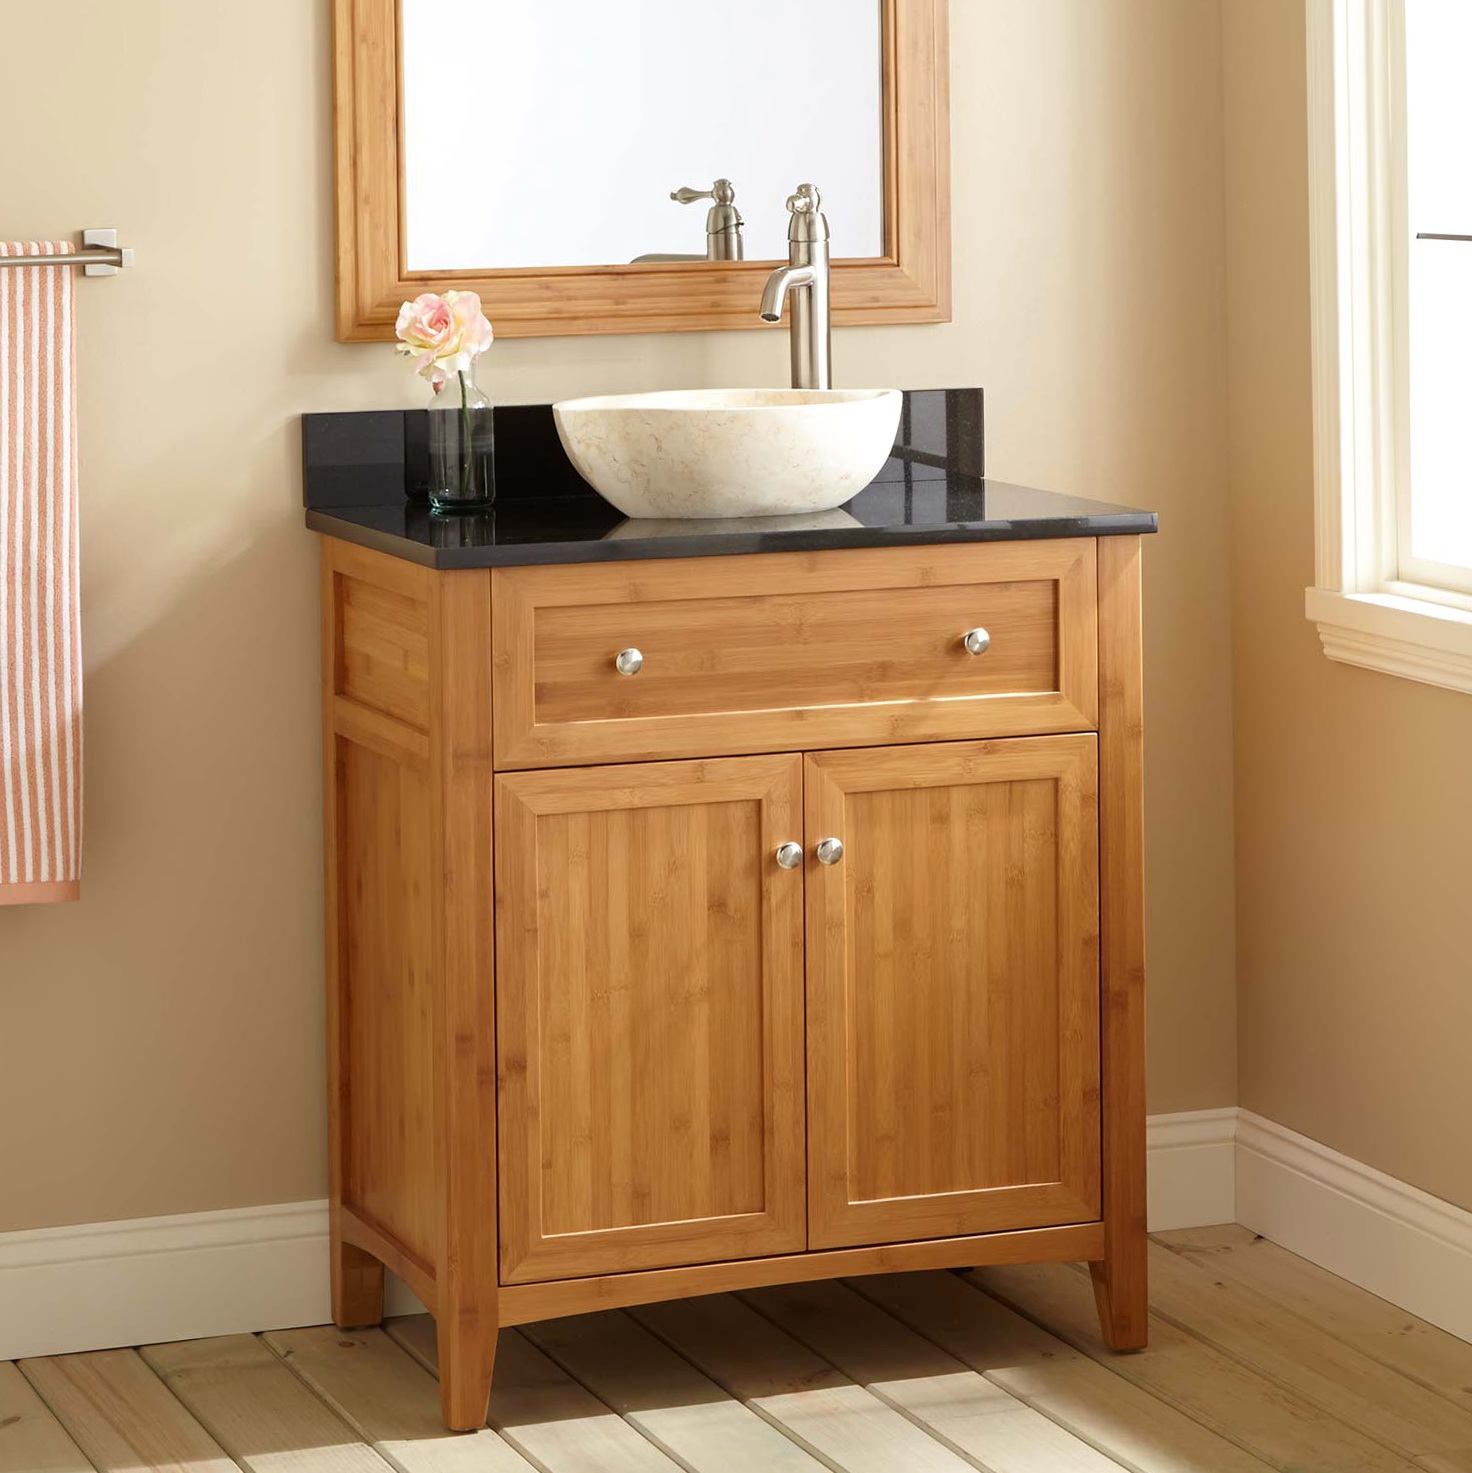 narrow depth bathroom vanity. Narrow Depth Bathroom Vanity Cabinets  Home Design Ideas